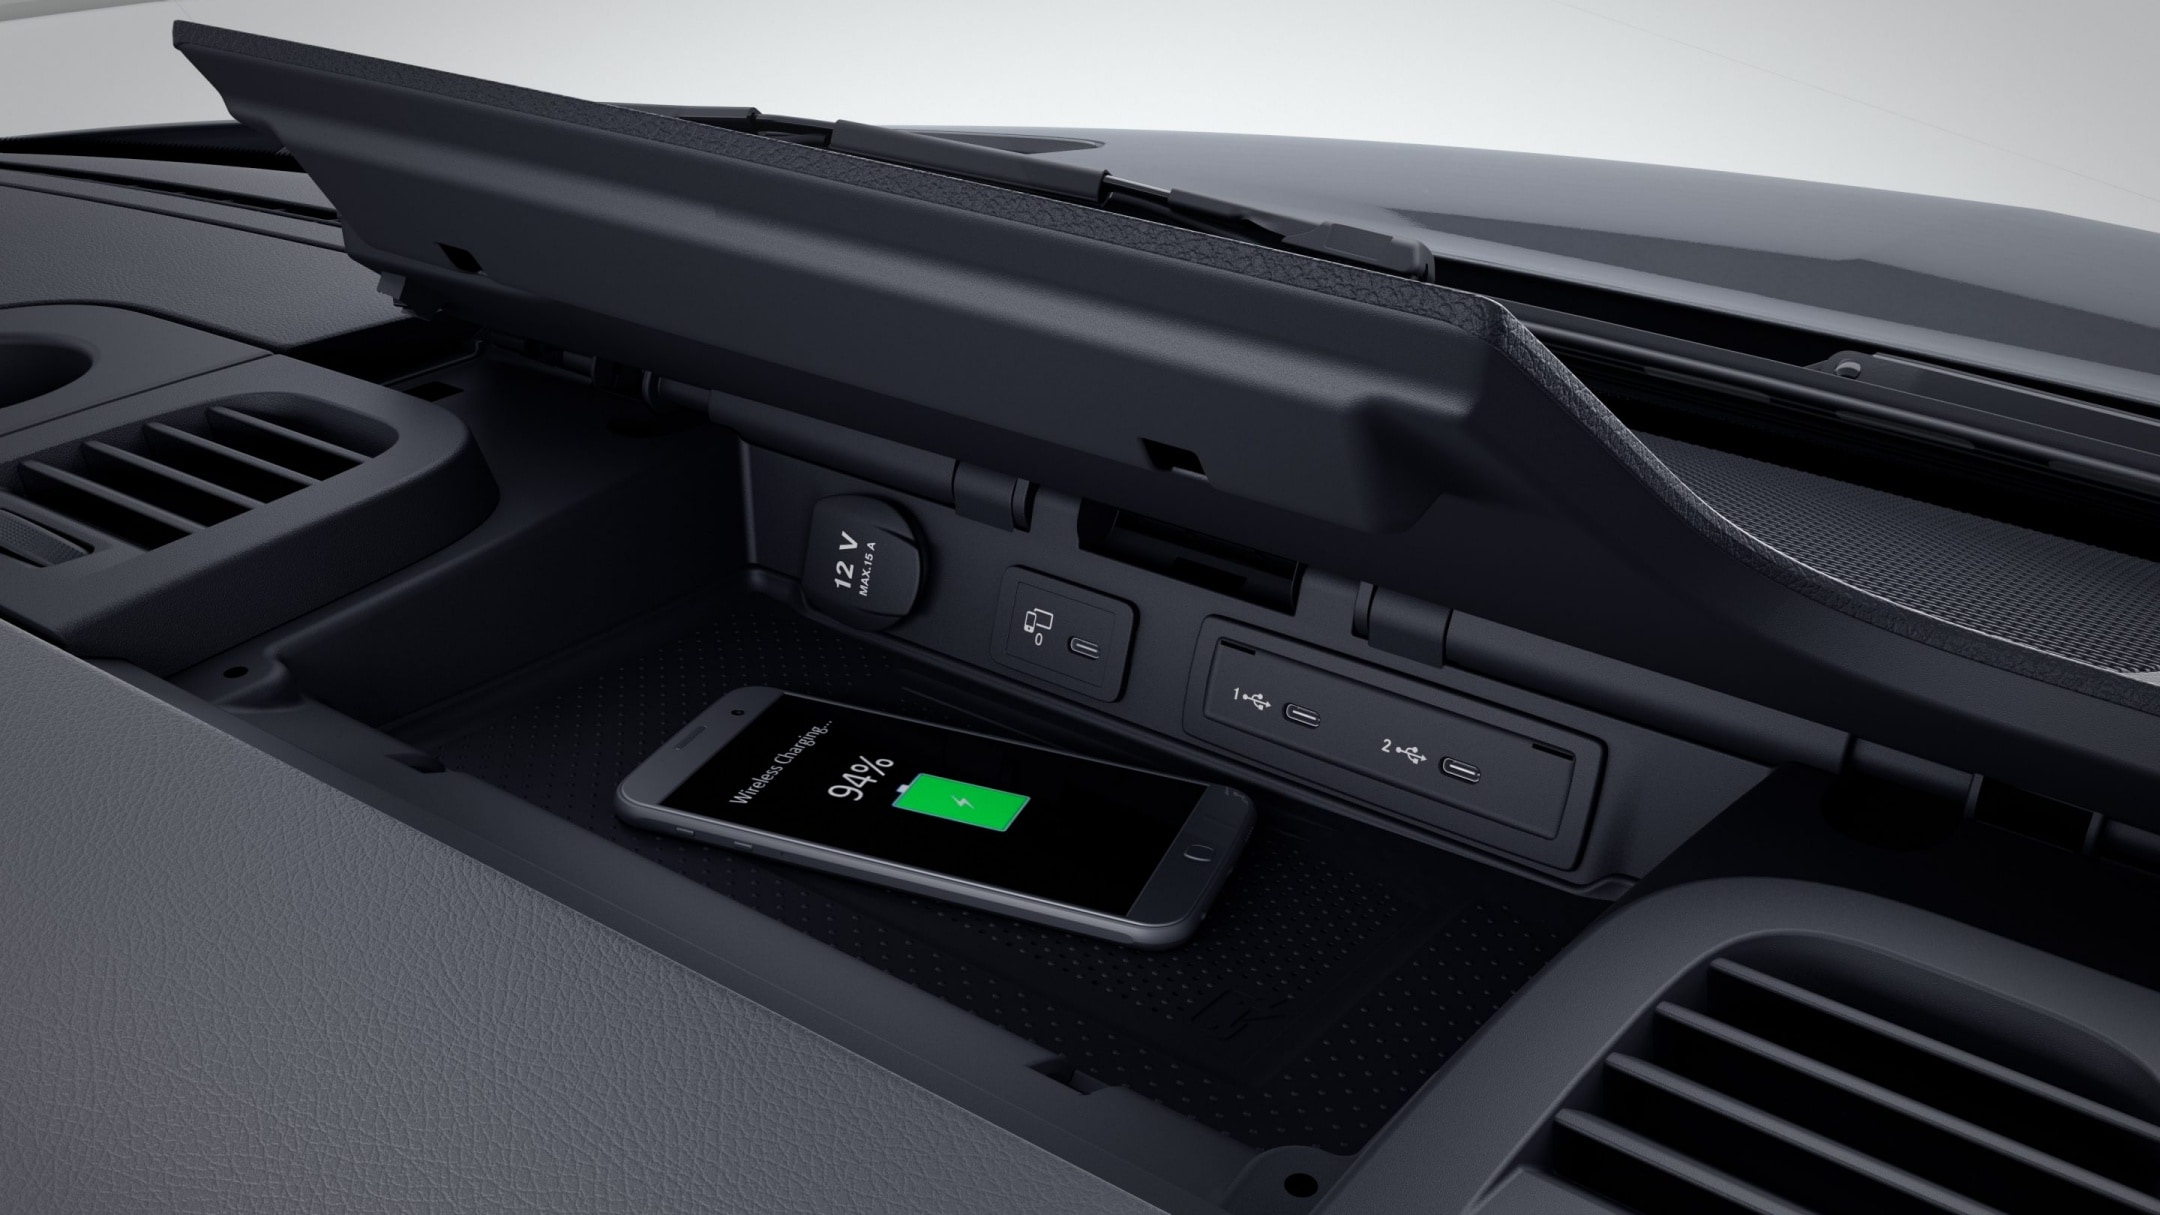 Sprinter Cab Chassis, wireless charging